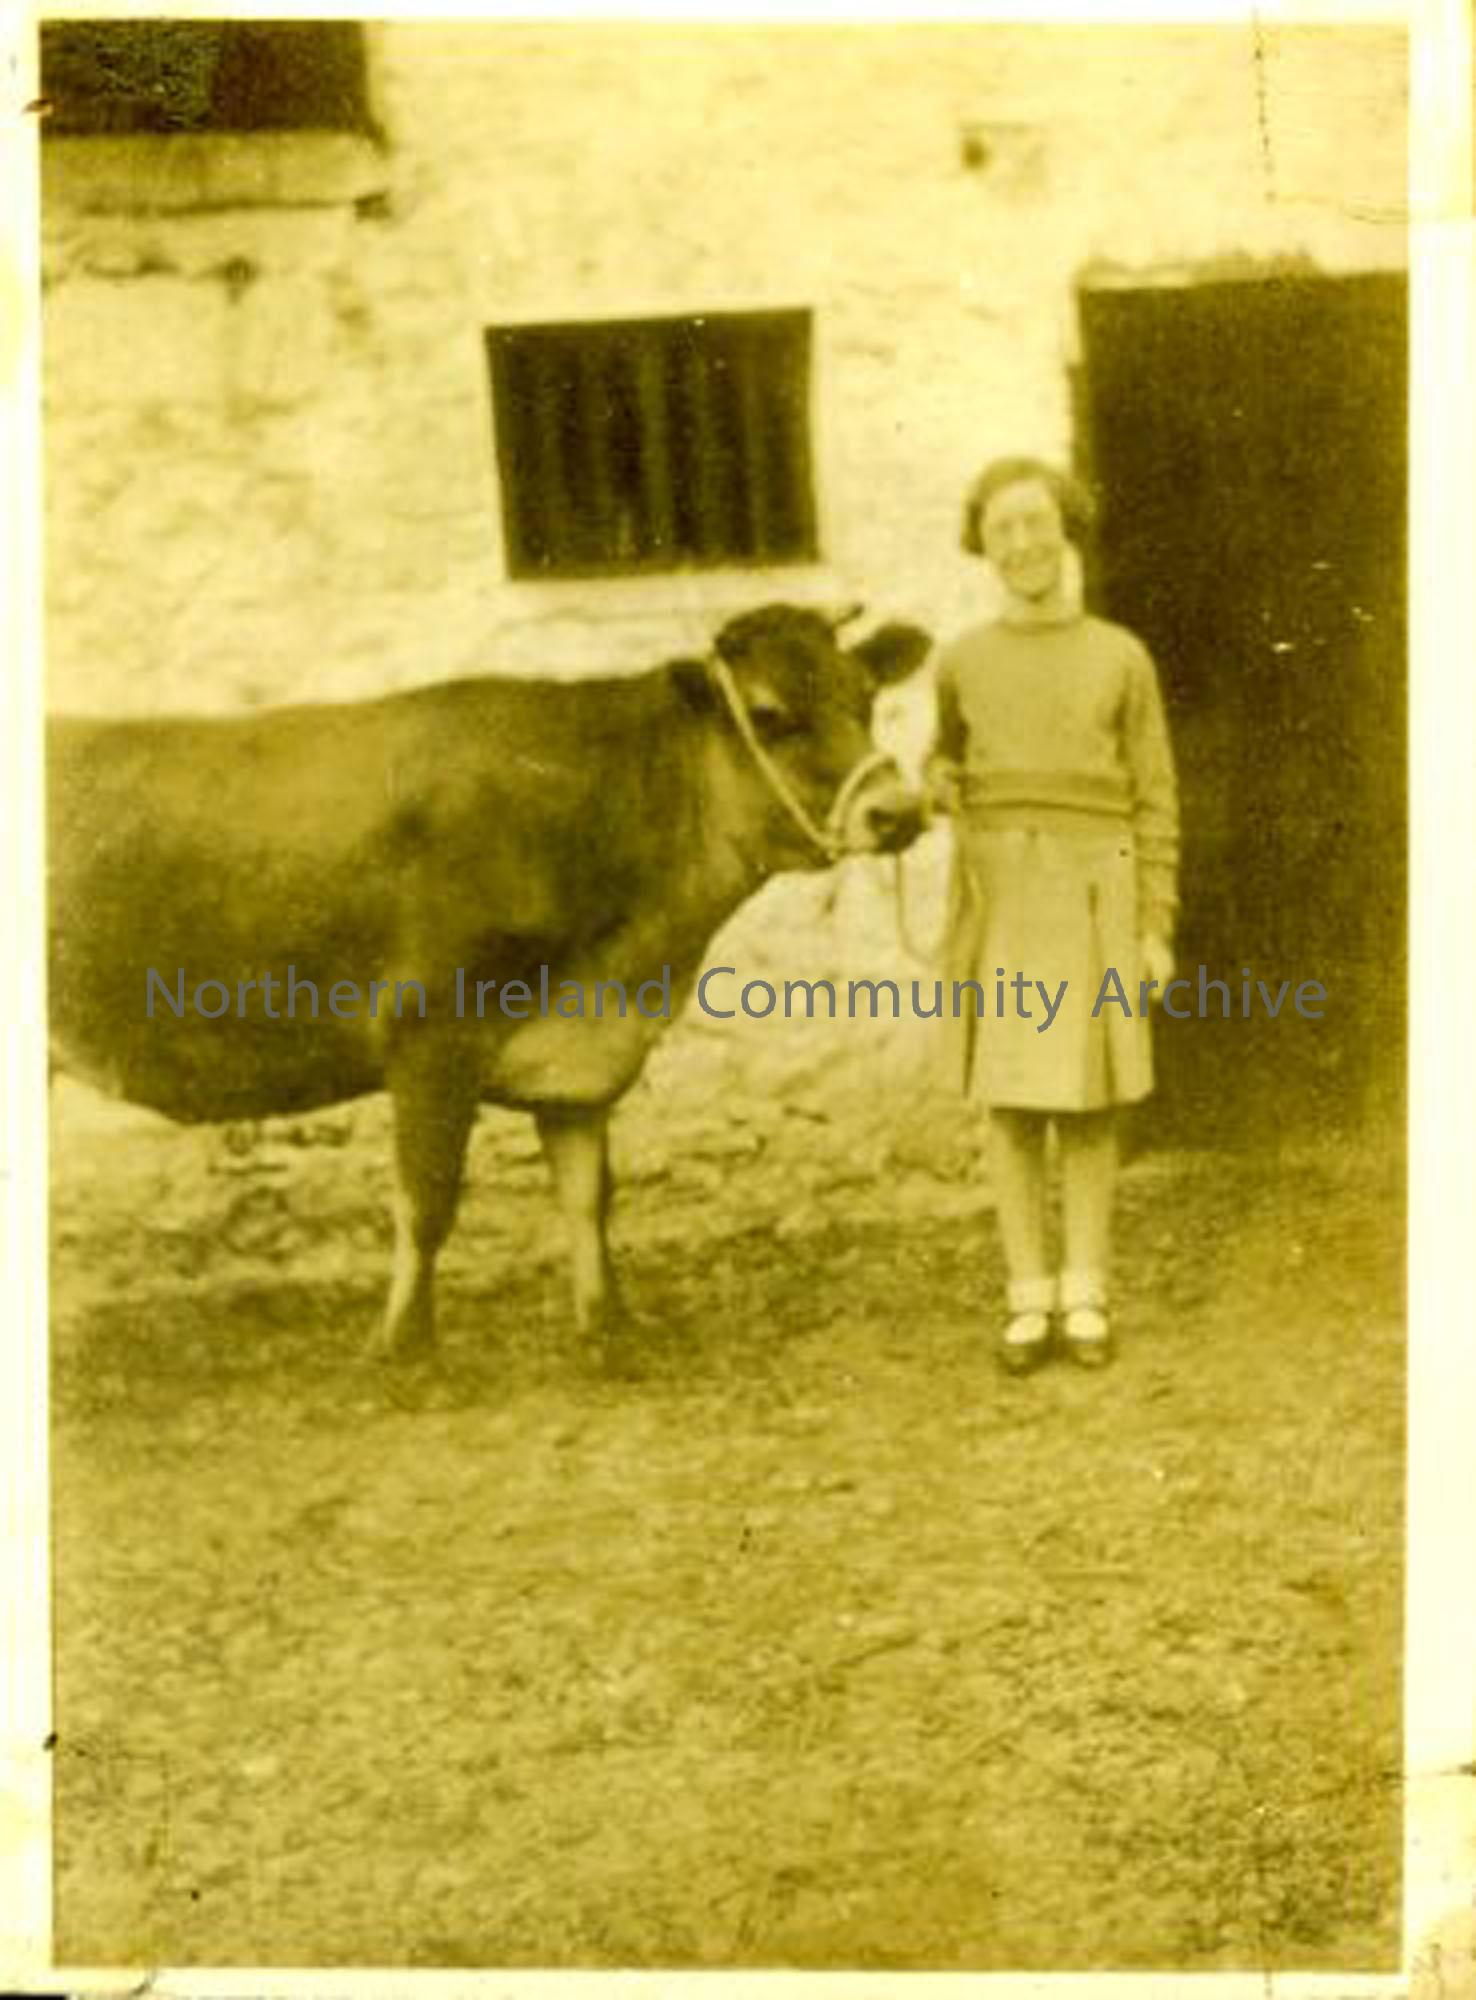 Stasia McErlain (now O'Loan). The McErlains were rabbit and poultry dealers whose house and business stood where the Castle Community Association building is now. (2244)